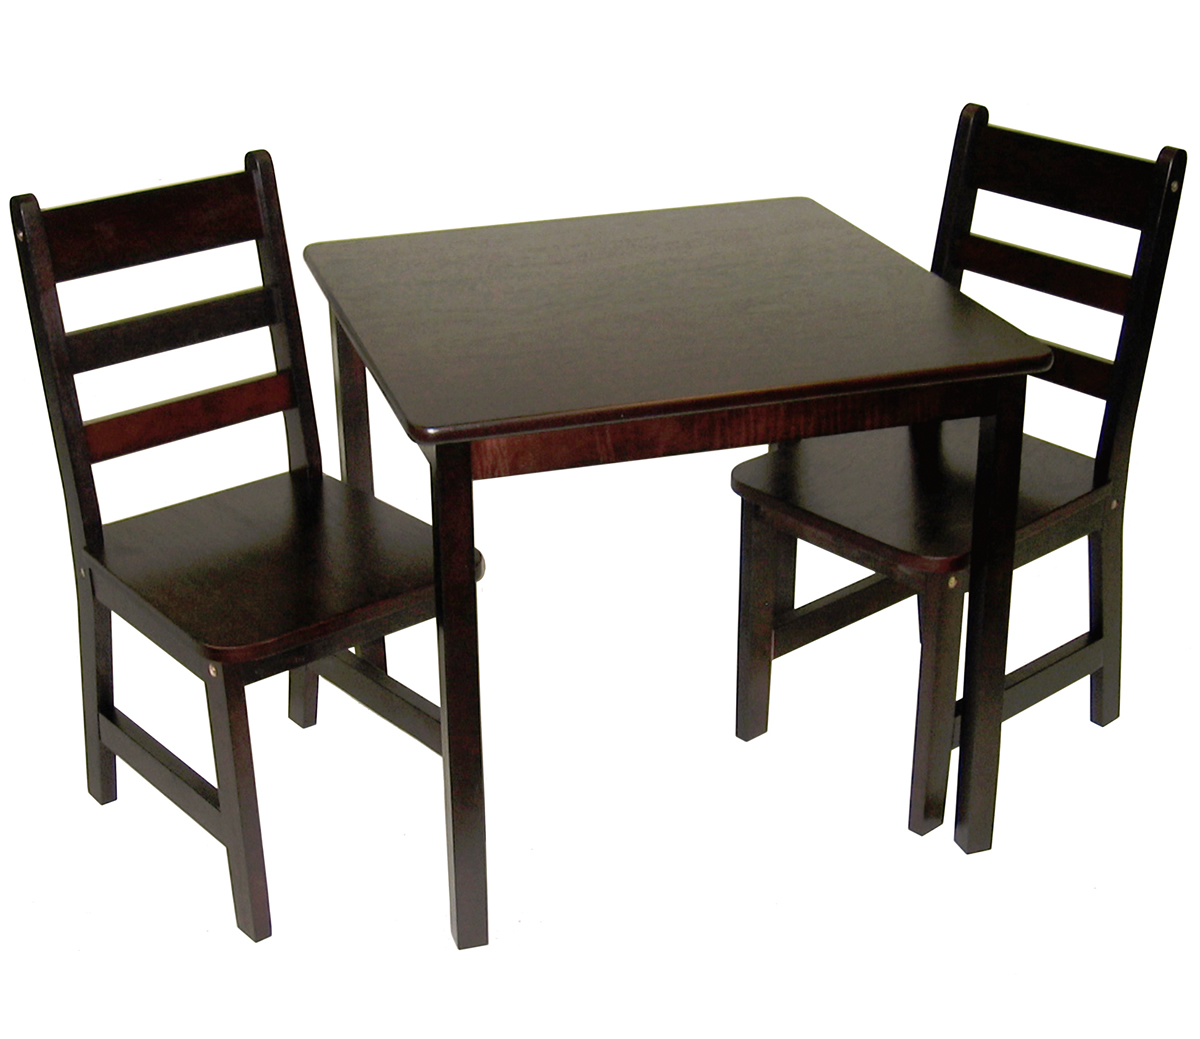 Lipper International Child's Square Table & Chairs, 3-Pie...